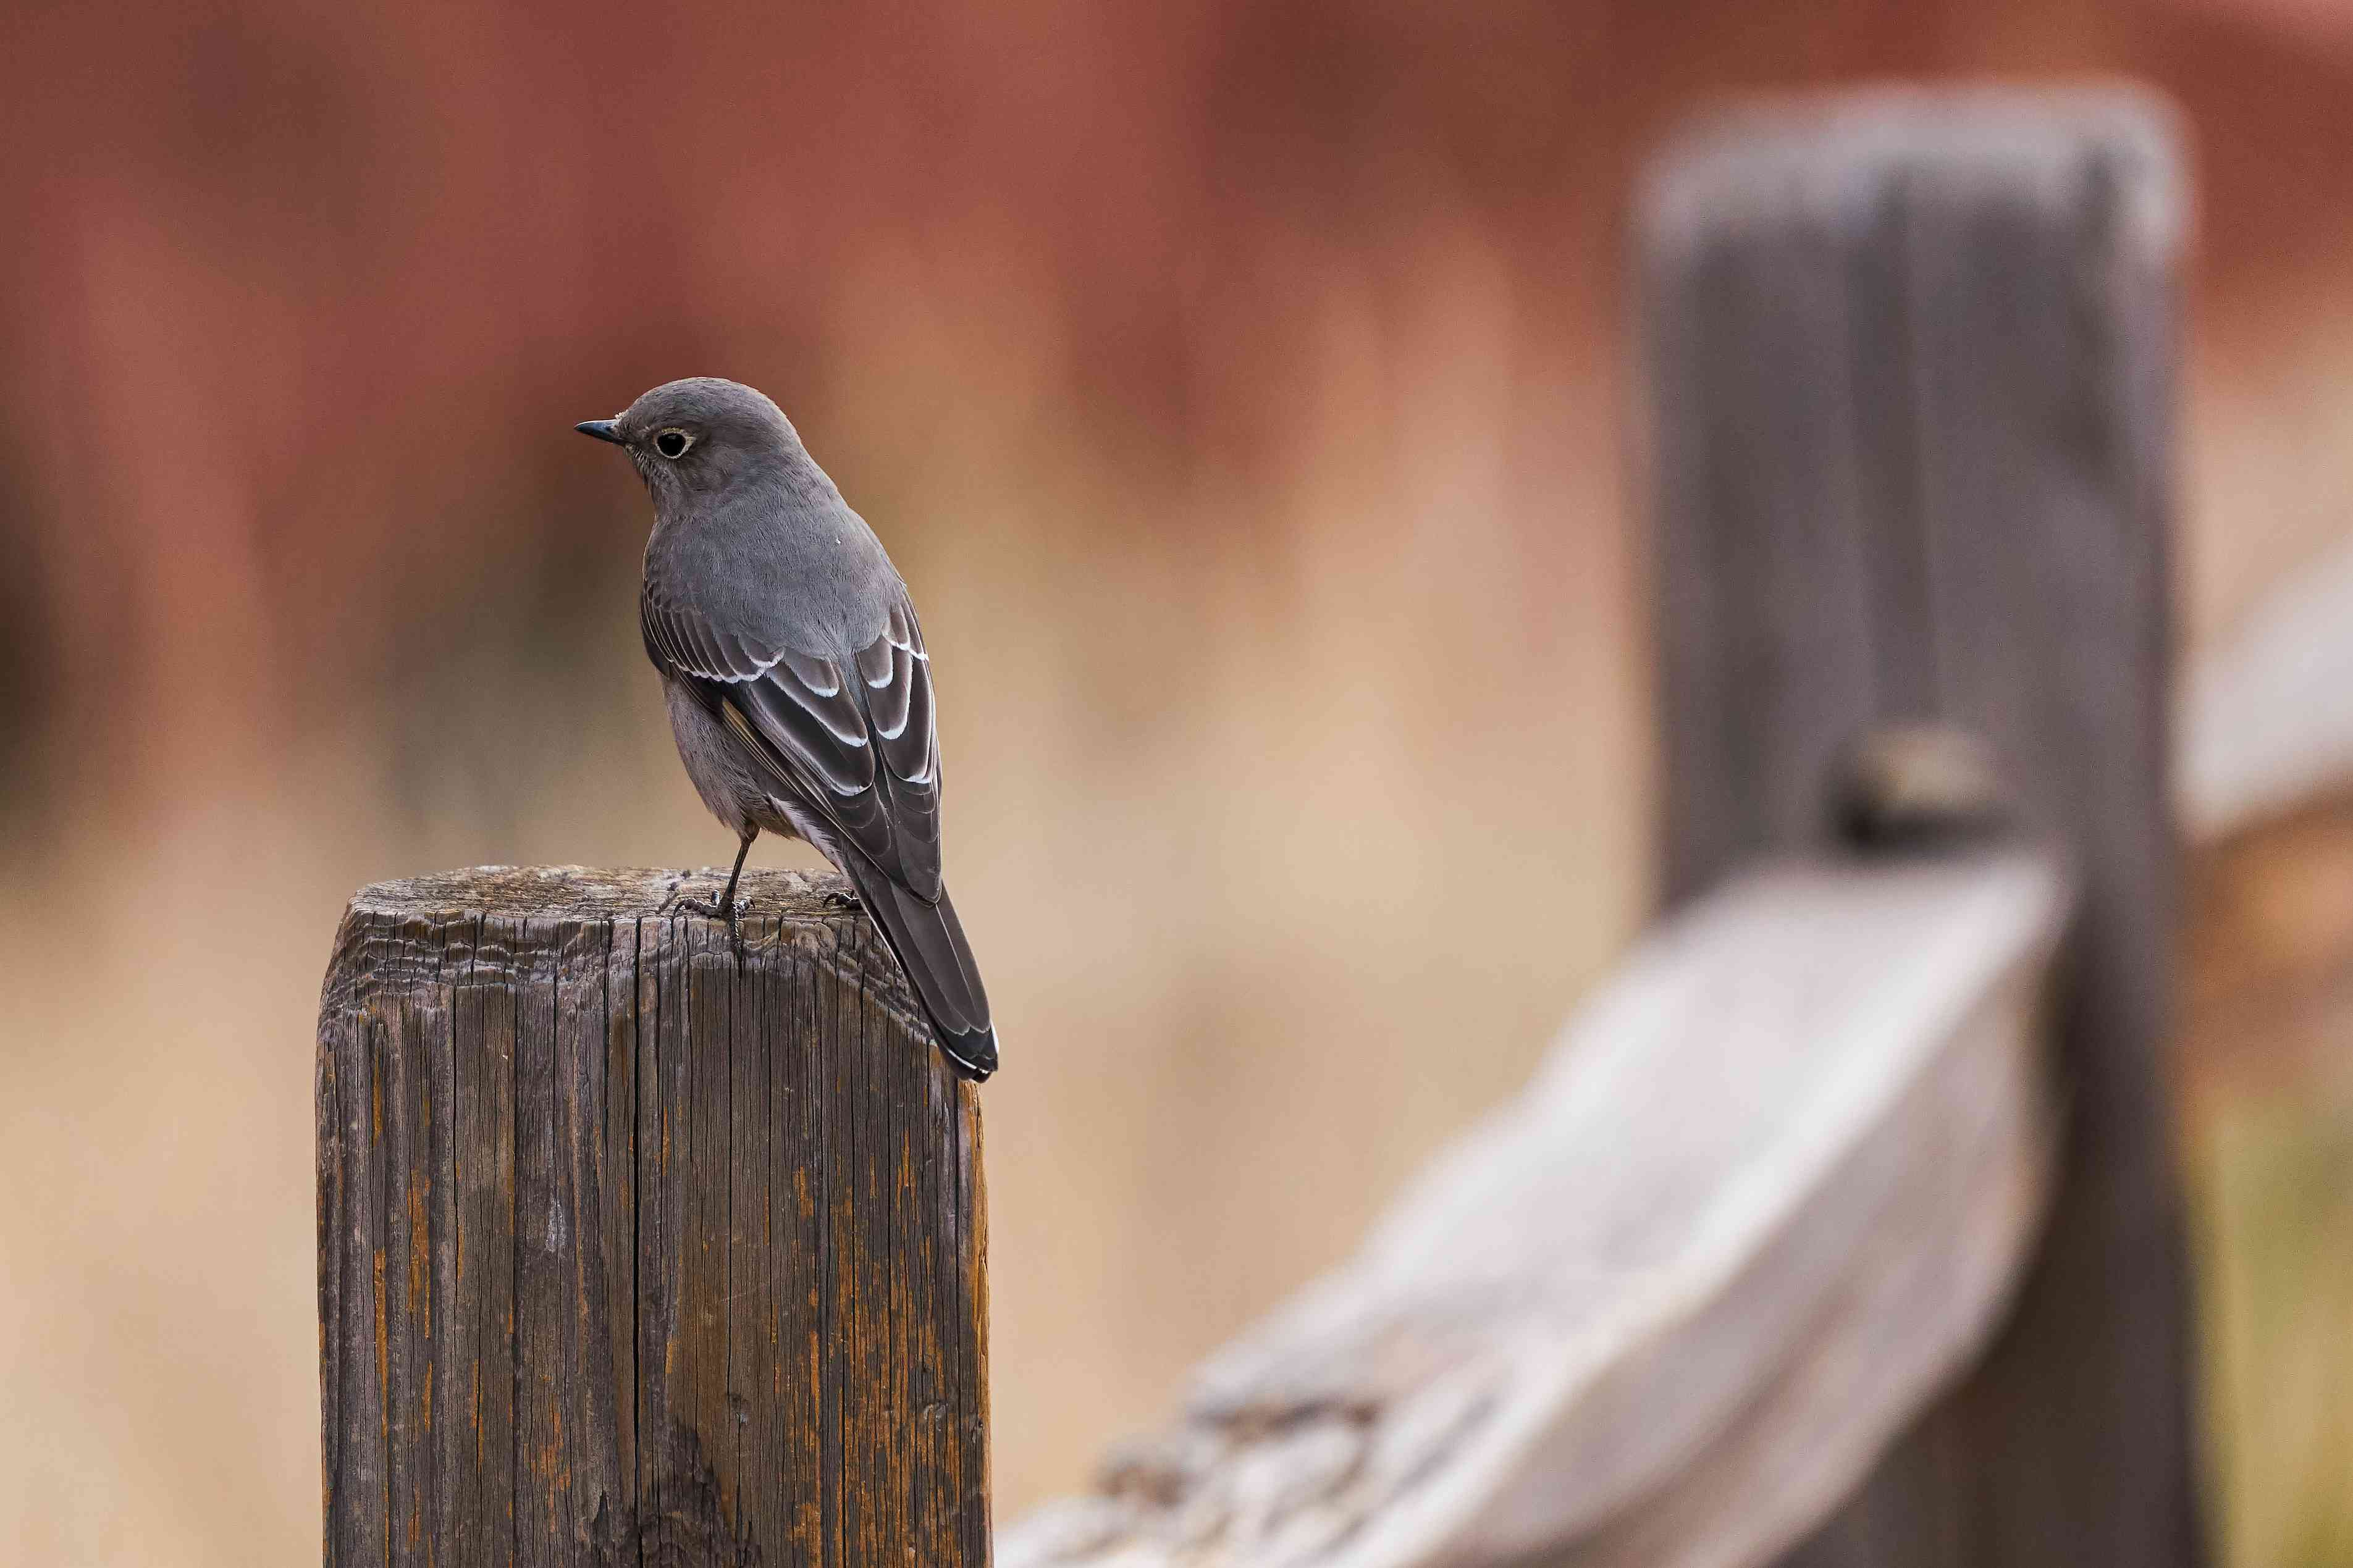 Plumbeous Vireo perched on a fence post